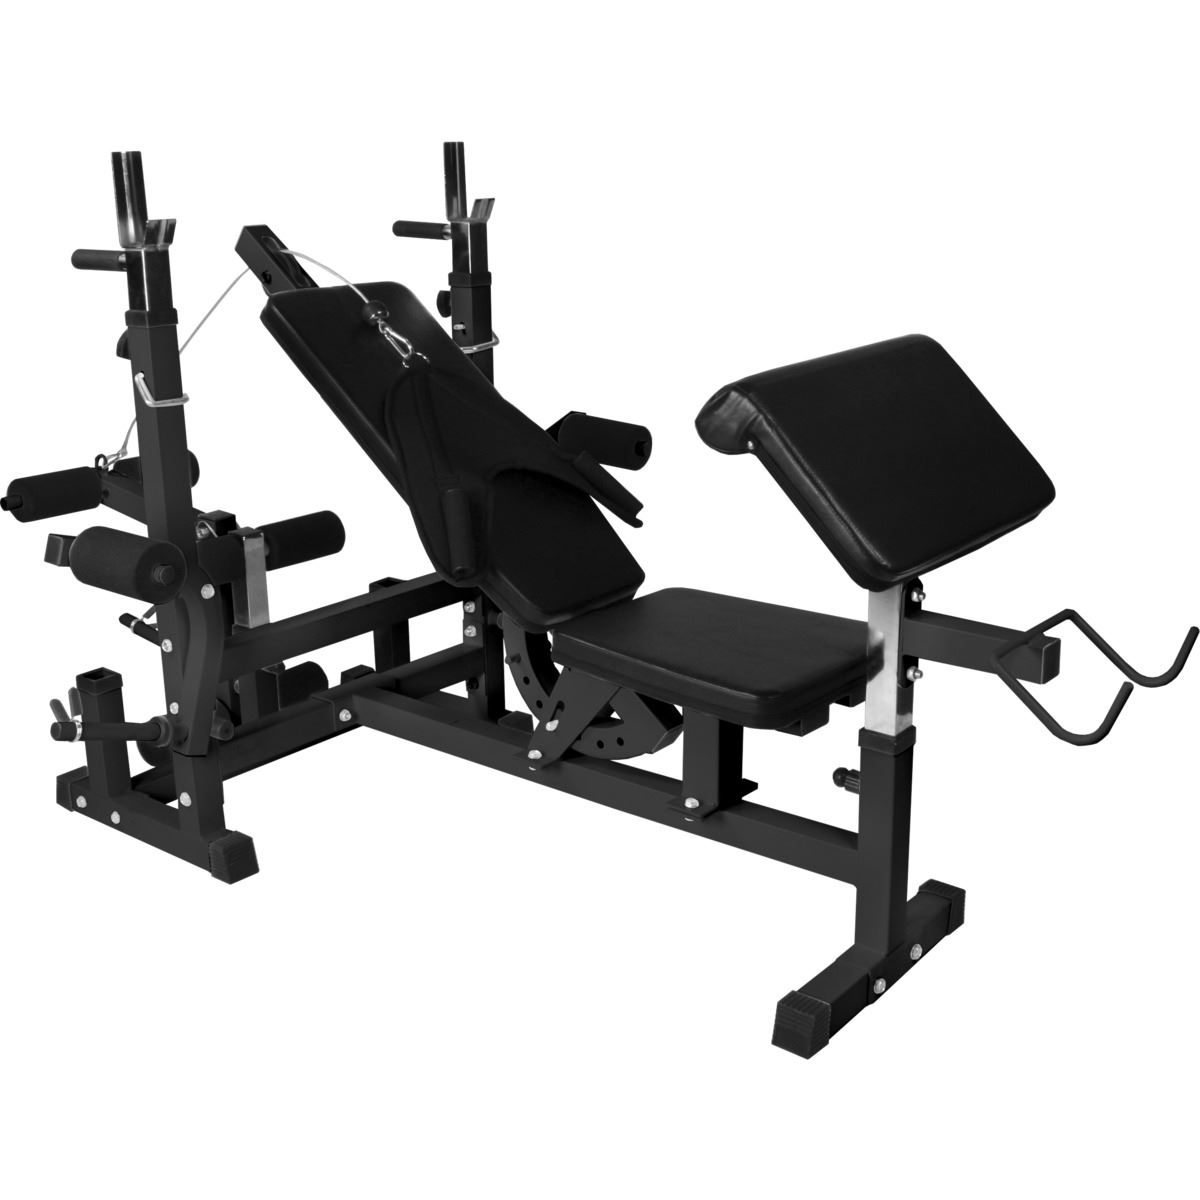 Beau Gorilla Sports Universal Weight Bench Workstation